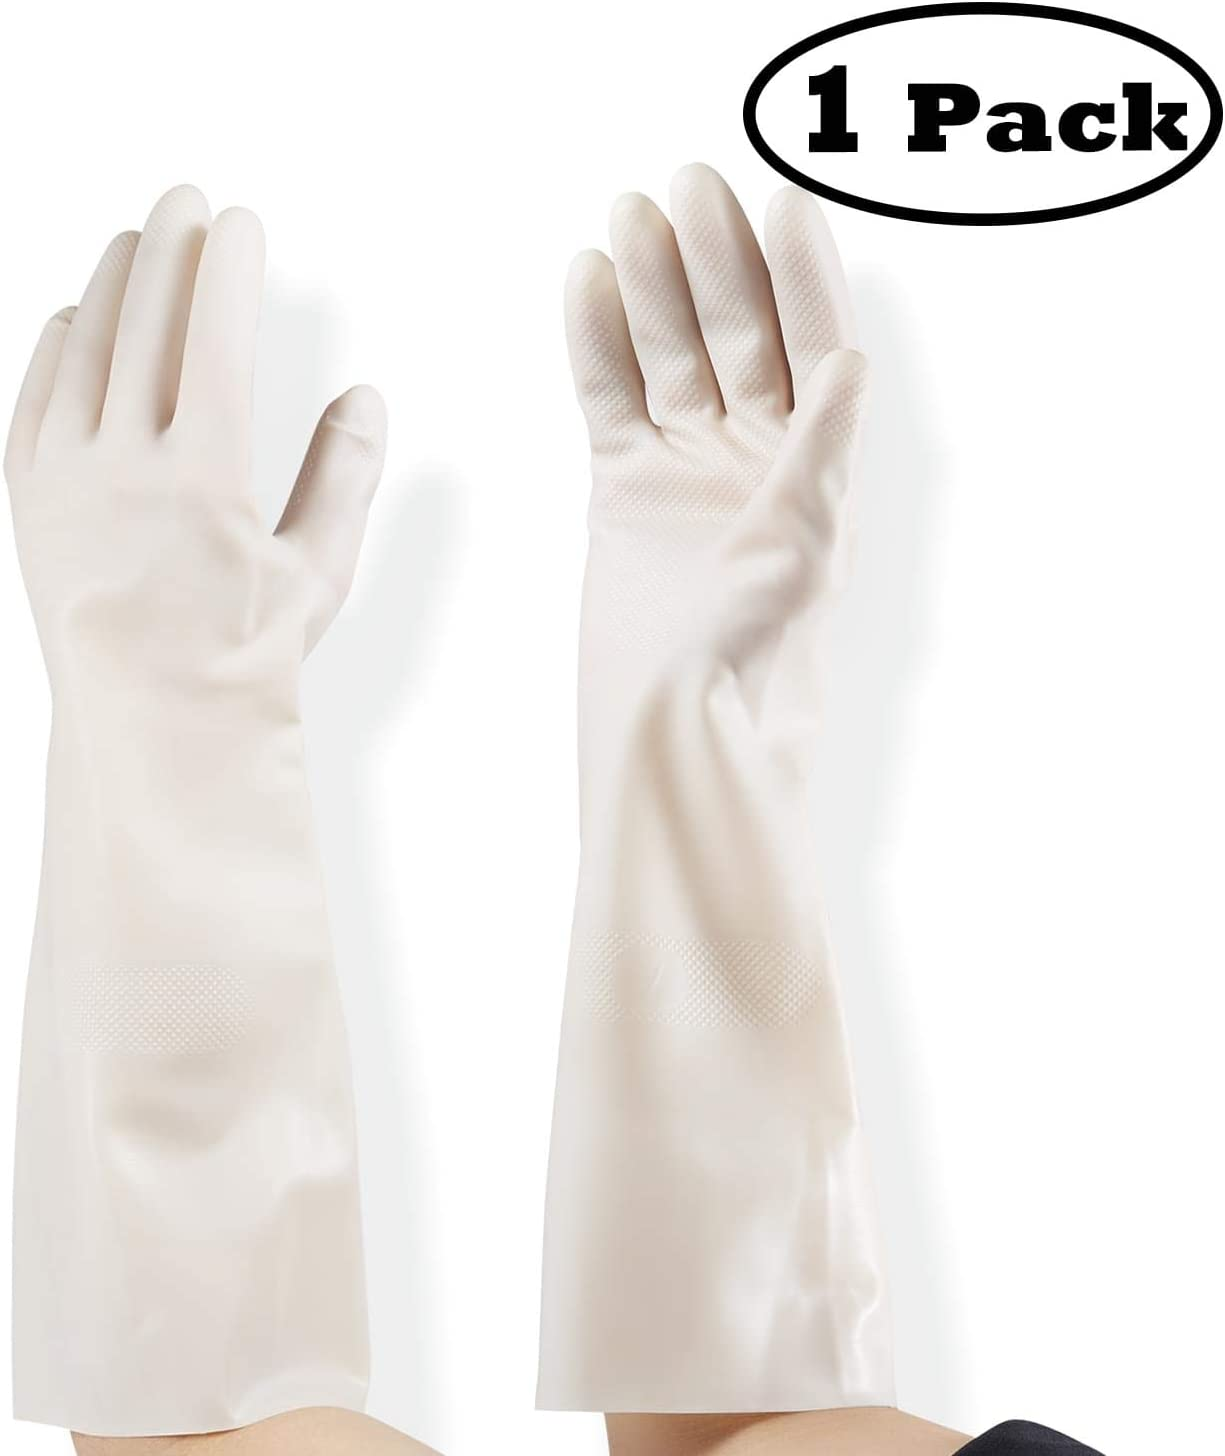 Dishwashing Cleaning Nitrile Gloves Latex-Free,Waterproof Reuseable Gloves, 15 Inch Long Cuff, Kitchen Gloves